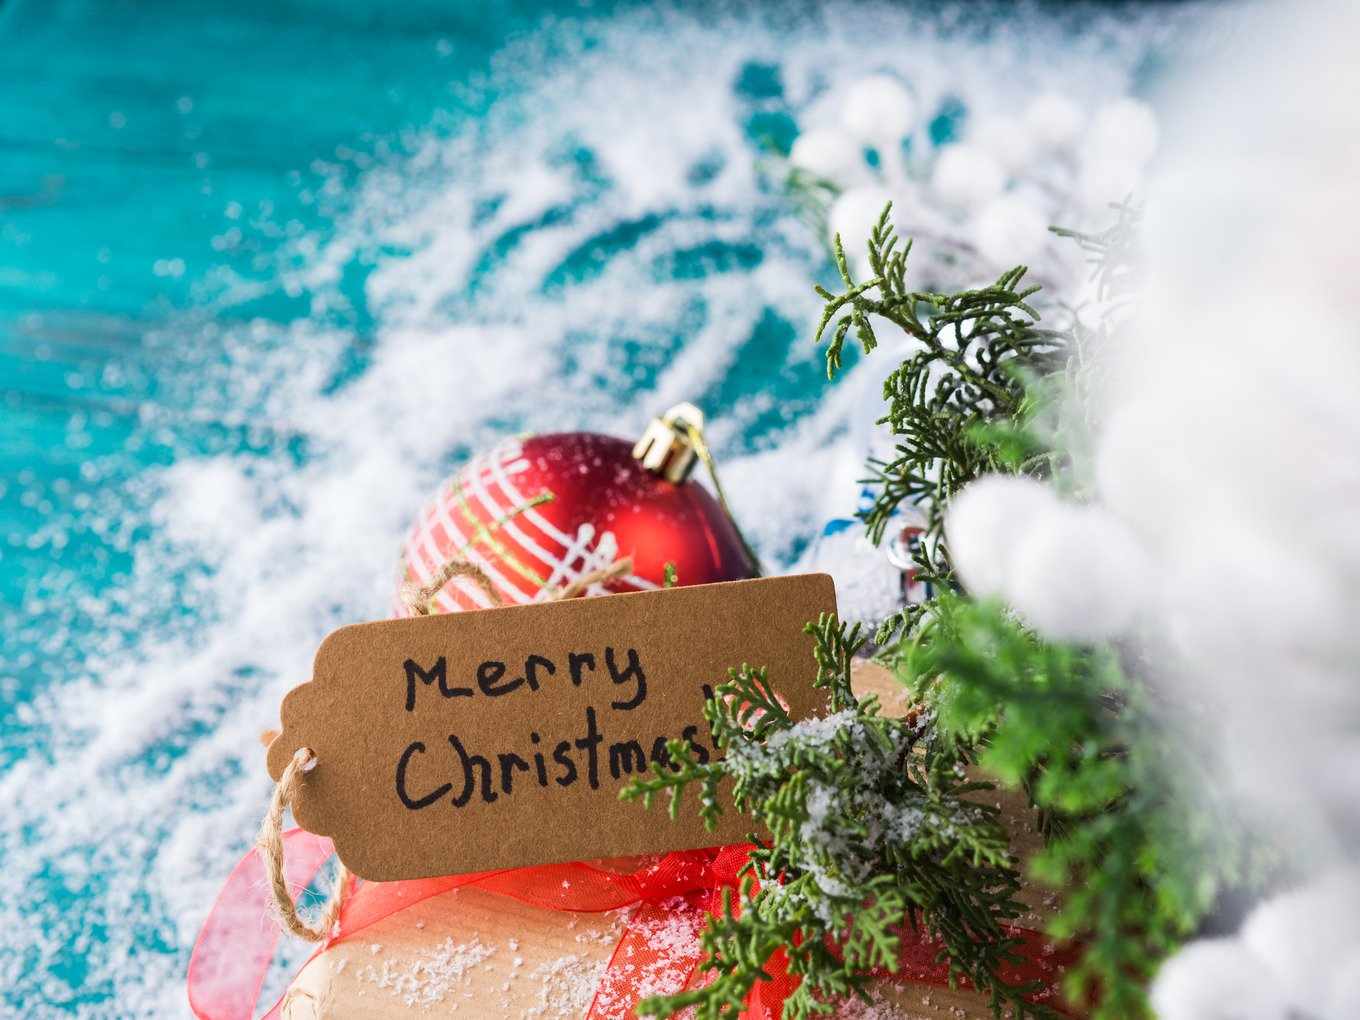 Merry christmas greeting card with gift holiday photos creative merry christmas greeting card kristyandbryce Image collections